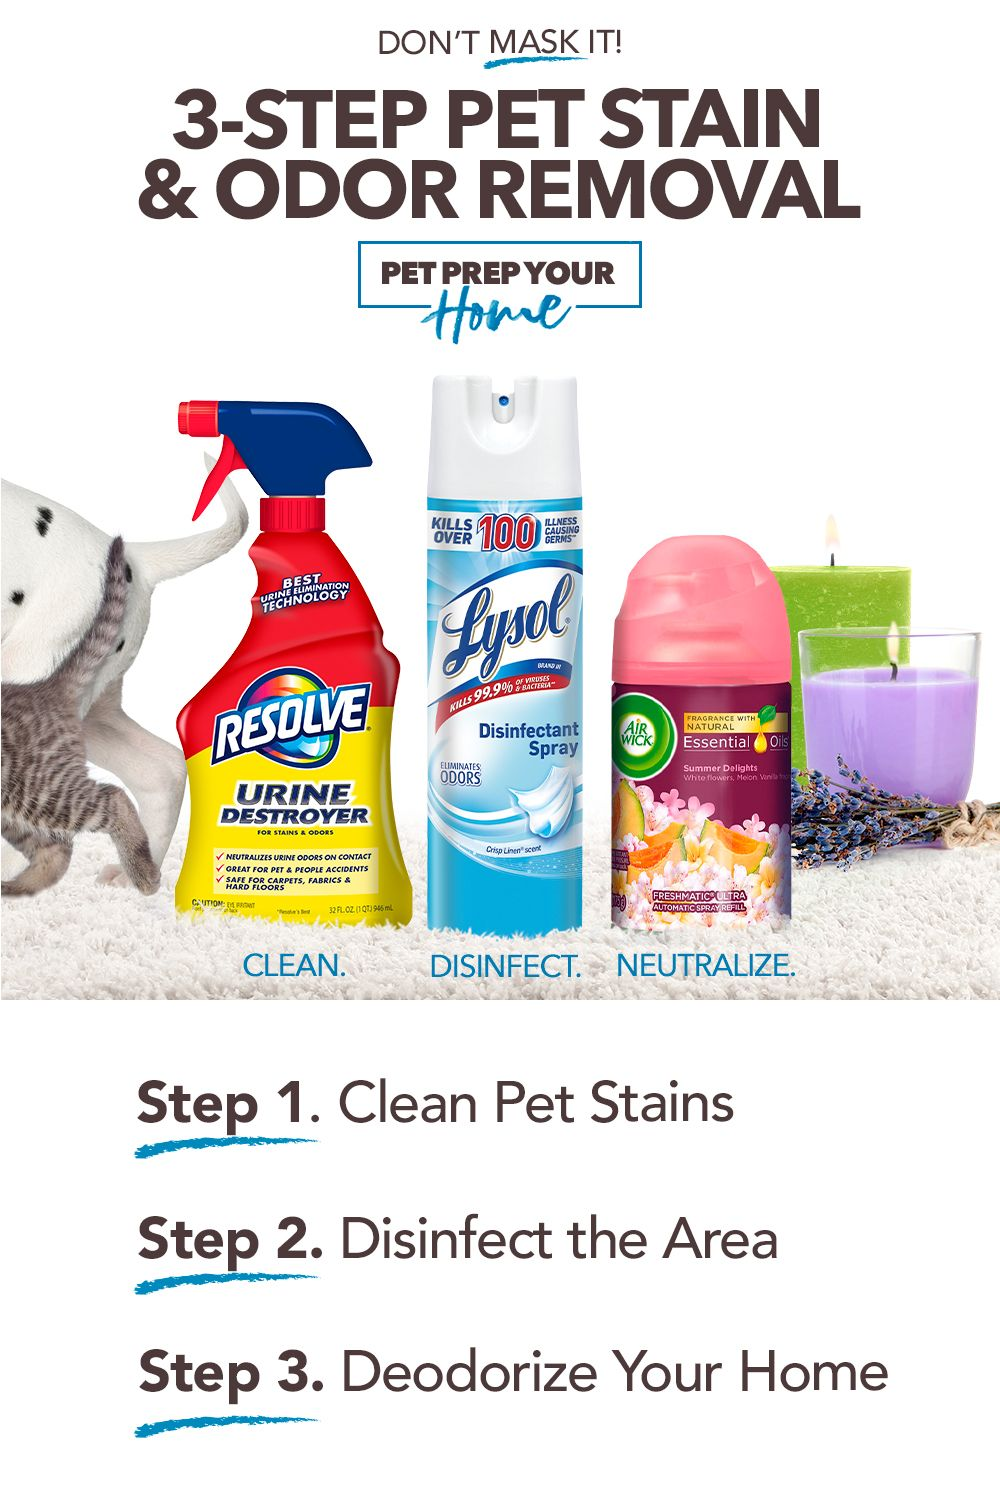 Be Pet Prep For Unexpected Accidents With Images Odor Remover Pet Stains Pet Cleaning